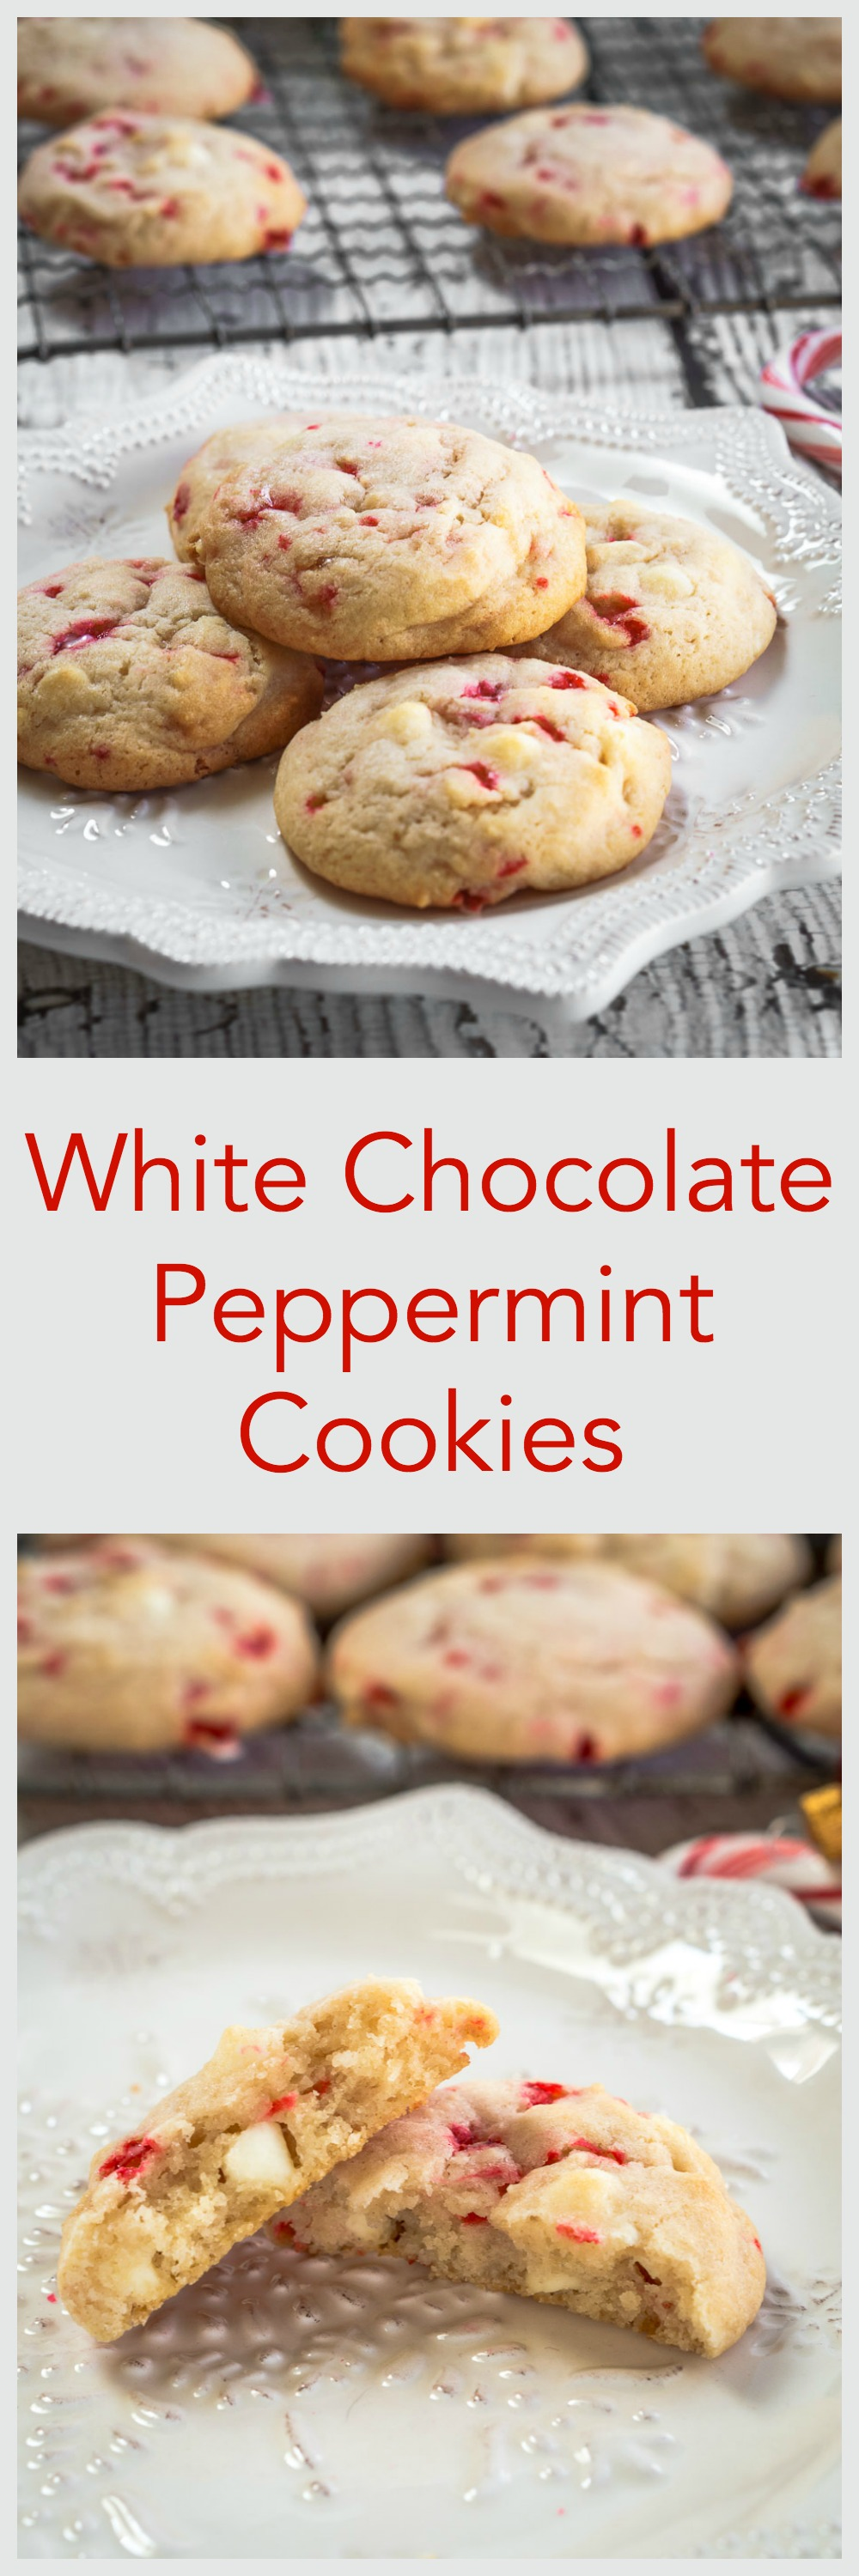 White Chocolate Peppermint cookies are soft, tender and delicious. They are quick and easy to make and perfect for enjoying with a friend over a hot chocolate | HostessAtHeart.com #cookies, #cookie #baking, #dessertrecipes #cookierecipe